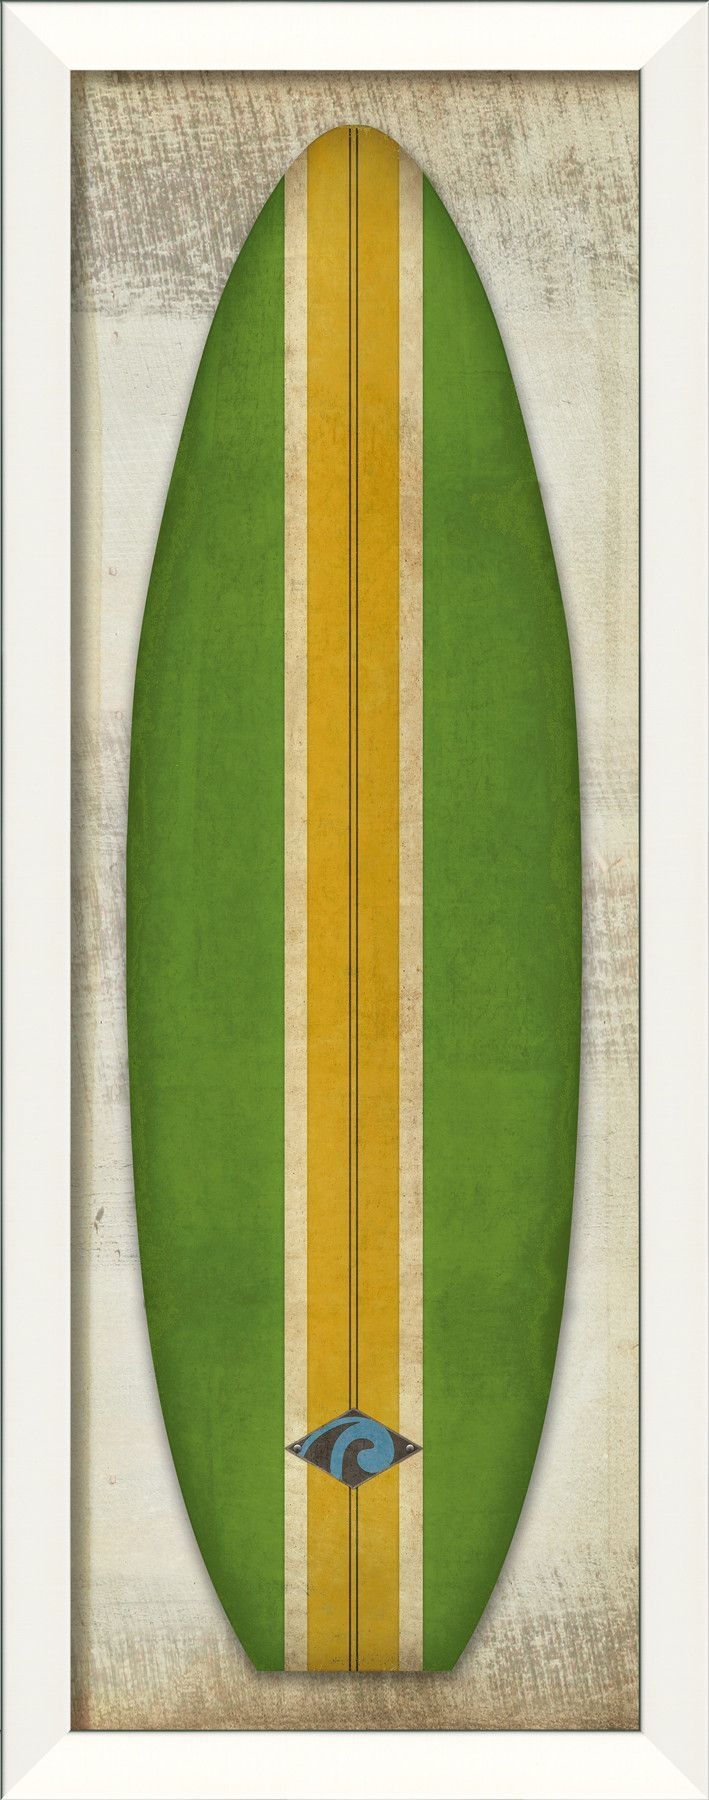 Malibu Classic Surfboard Framed Graphic Art in Yellow and Green ...